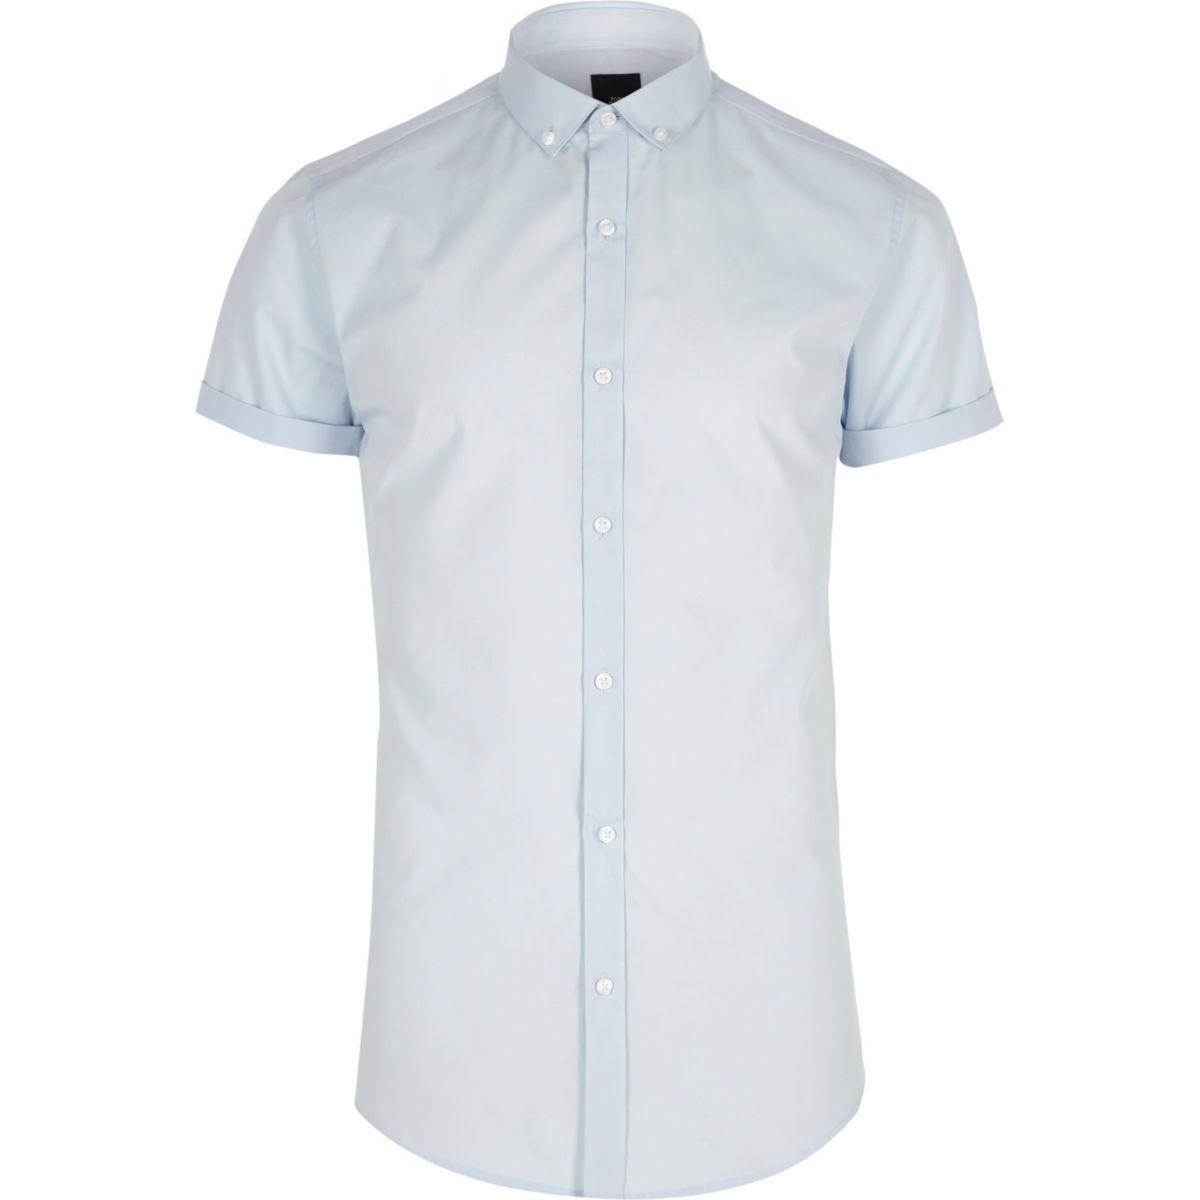 Blue slim fit short sleeve button-down shirt